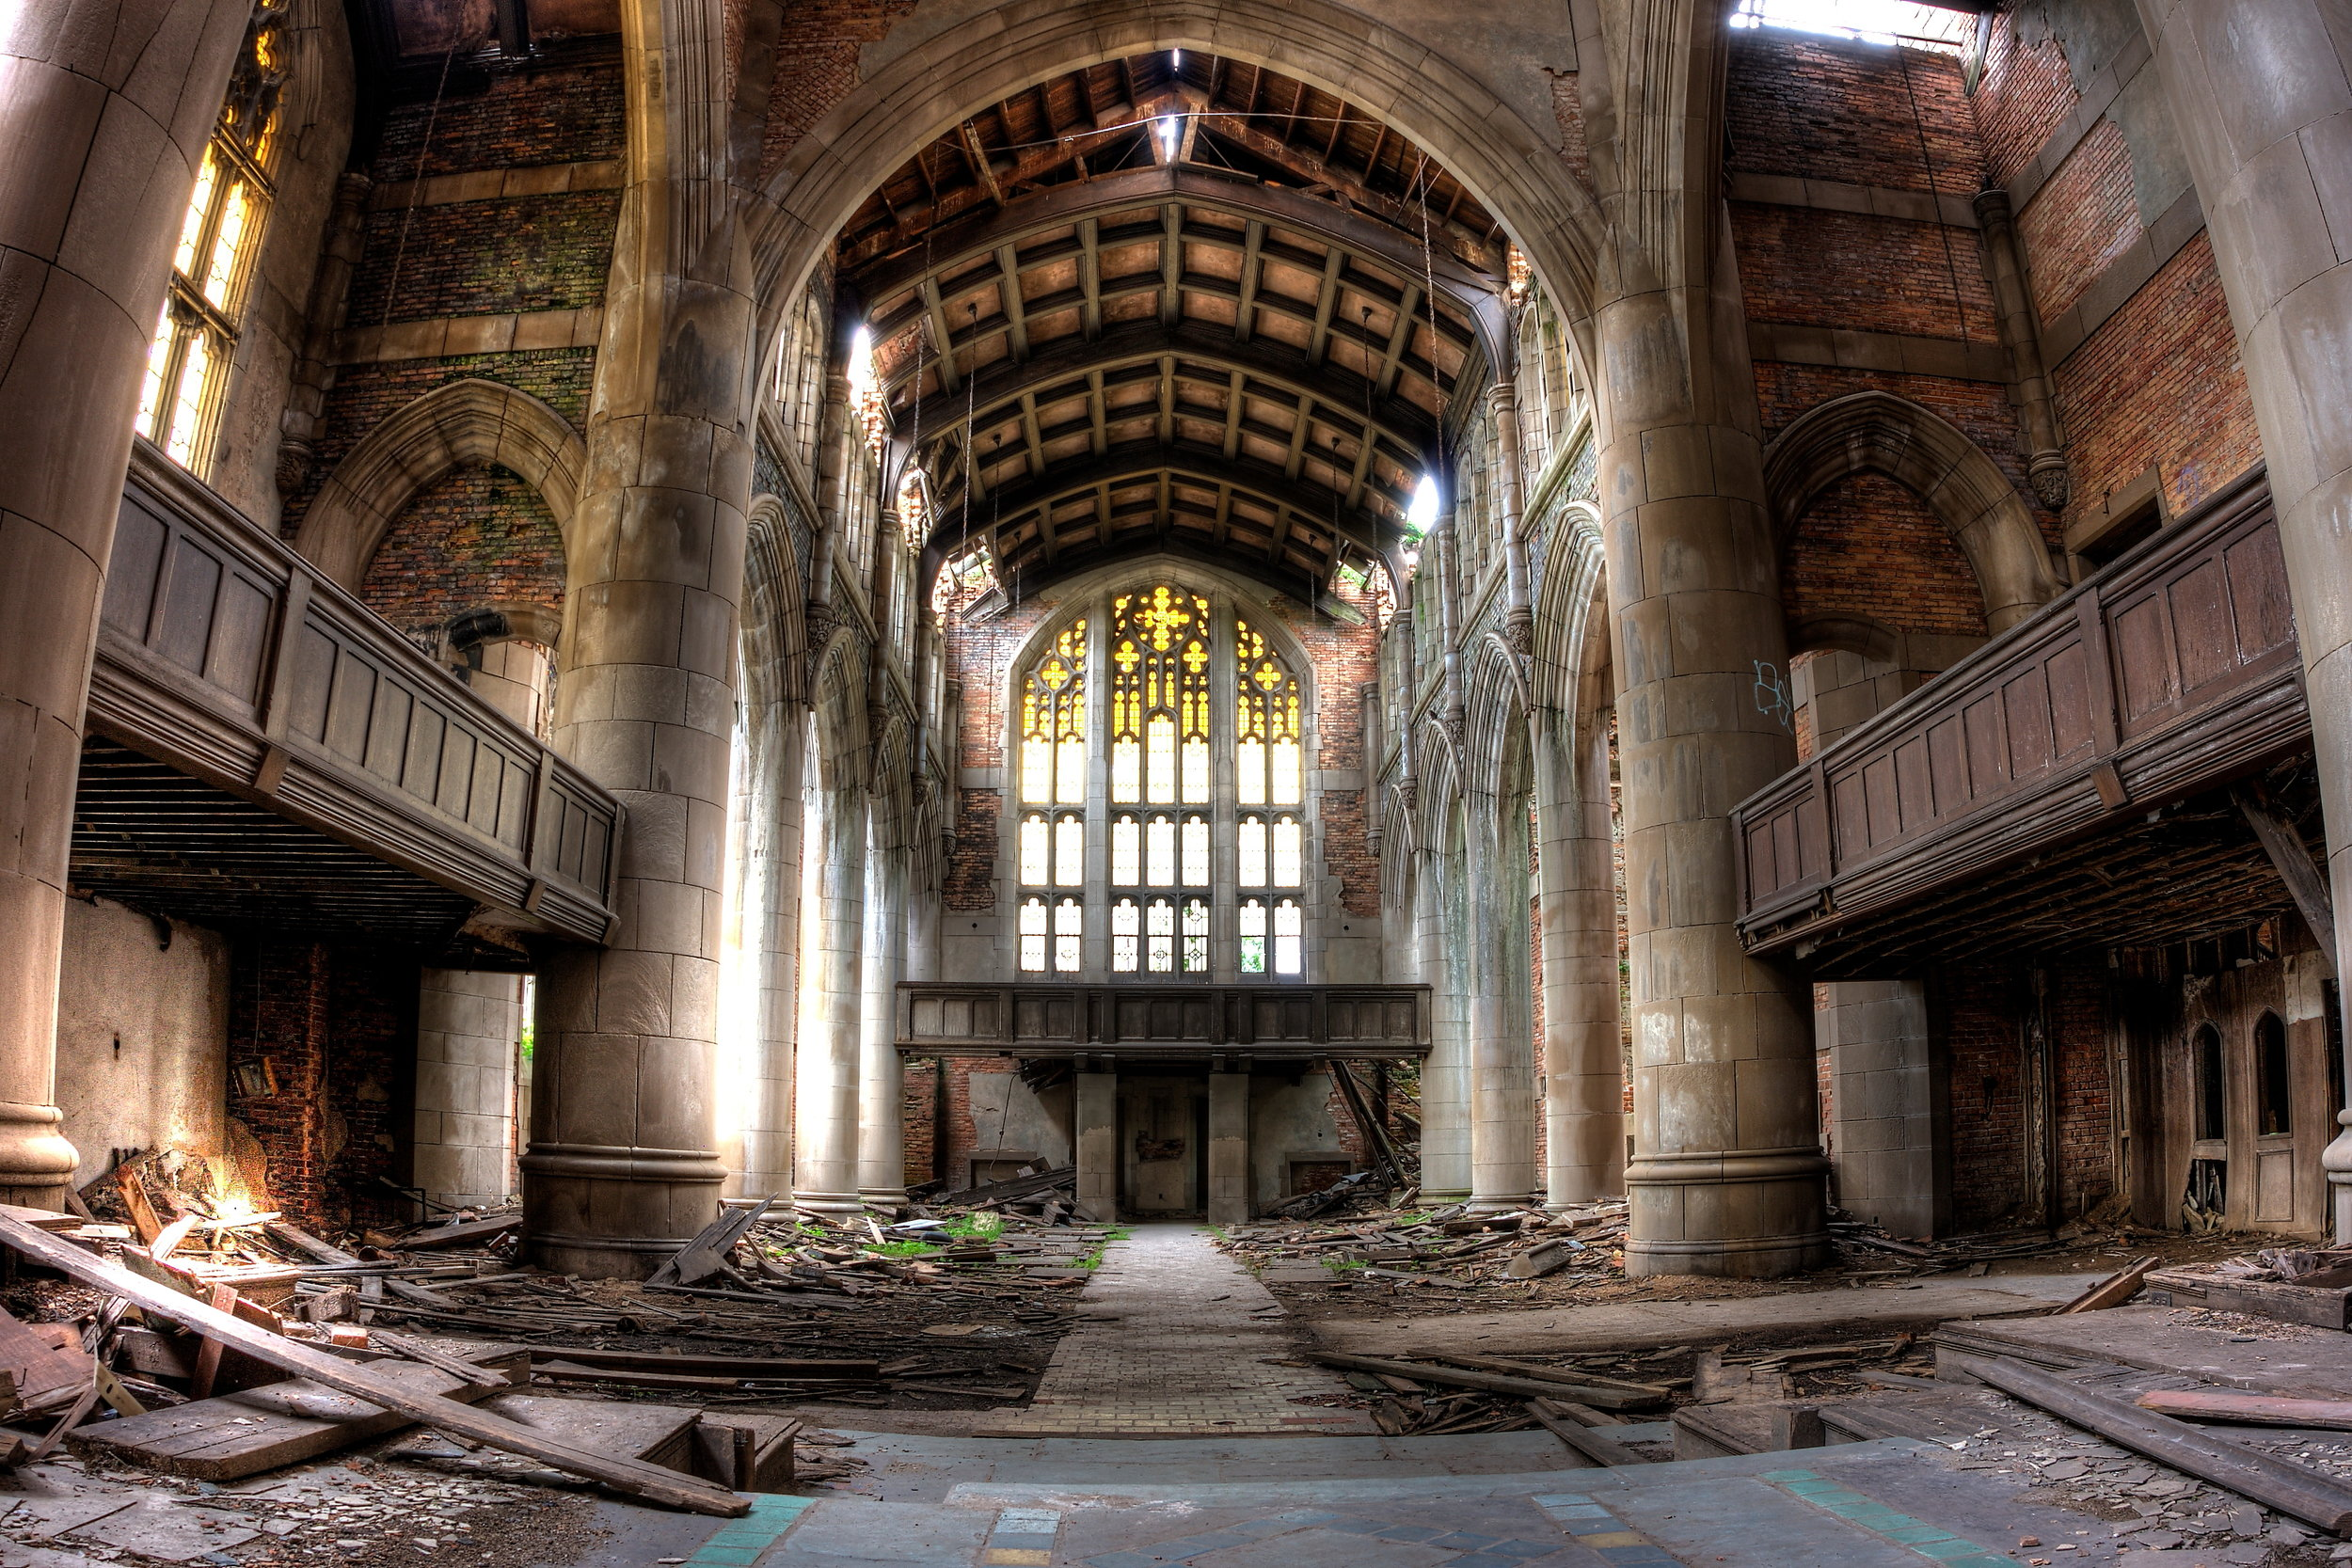 Sanctuary. Abandoned City Methodist Church in Gary, Indiana. HDR